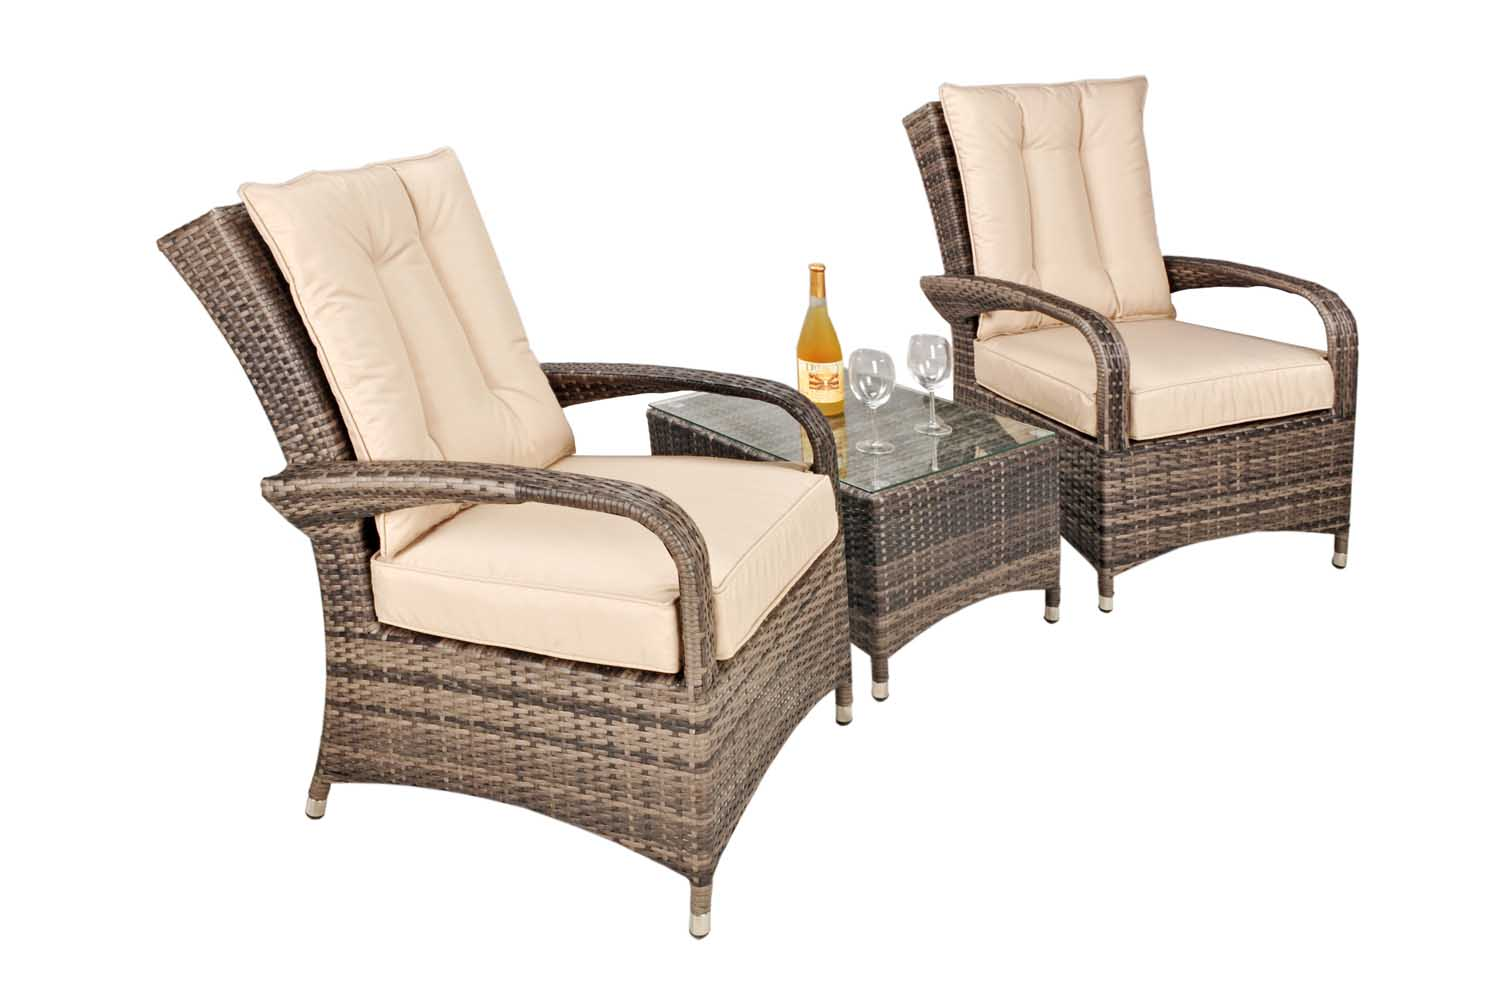 https://www.firstfurniture.co.uk/pub/media/catalog/product/k/e/kensington_deluxe_2_seat_companion_set_1.jpg